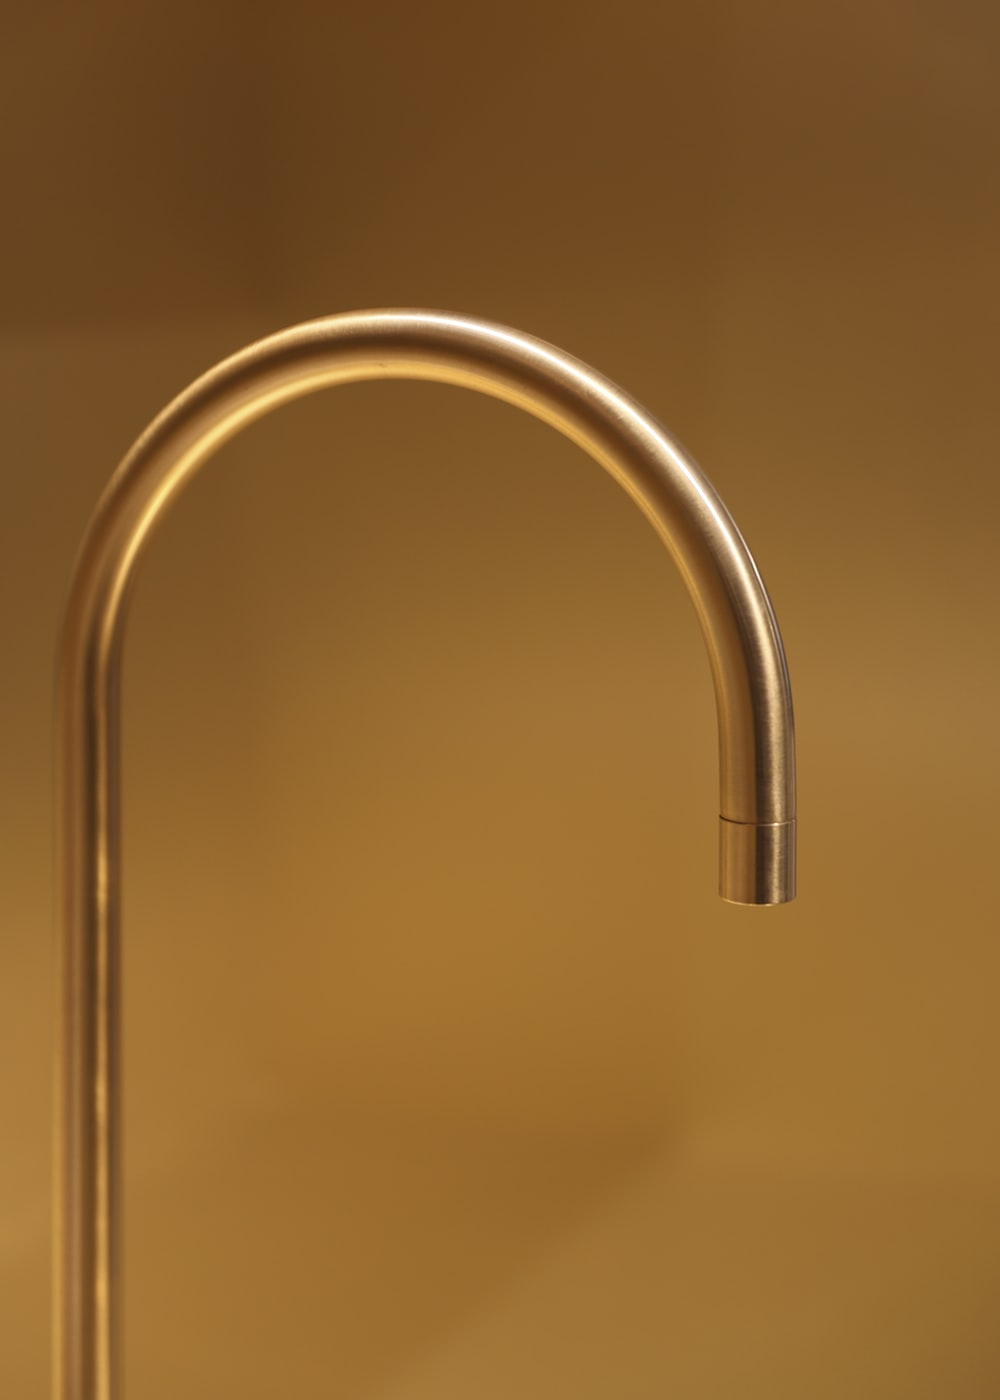 stainless steel faucet in close up photography